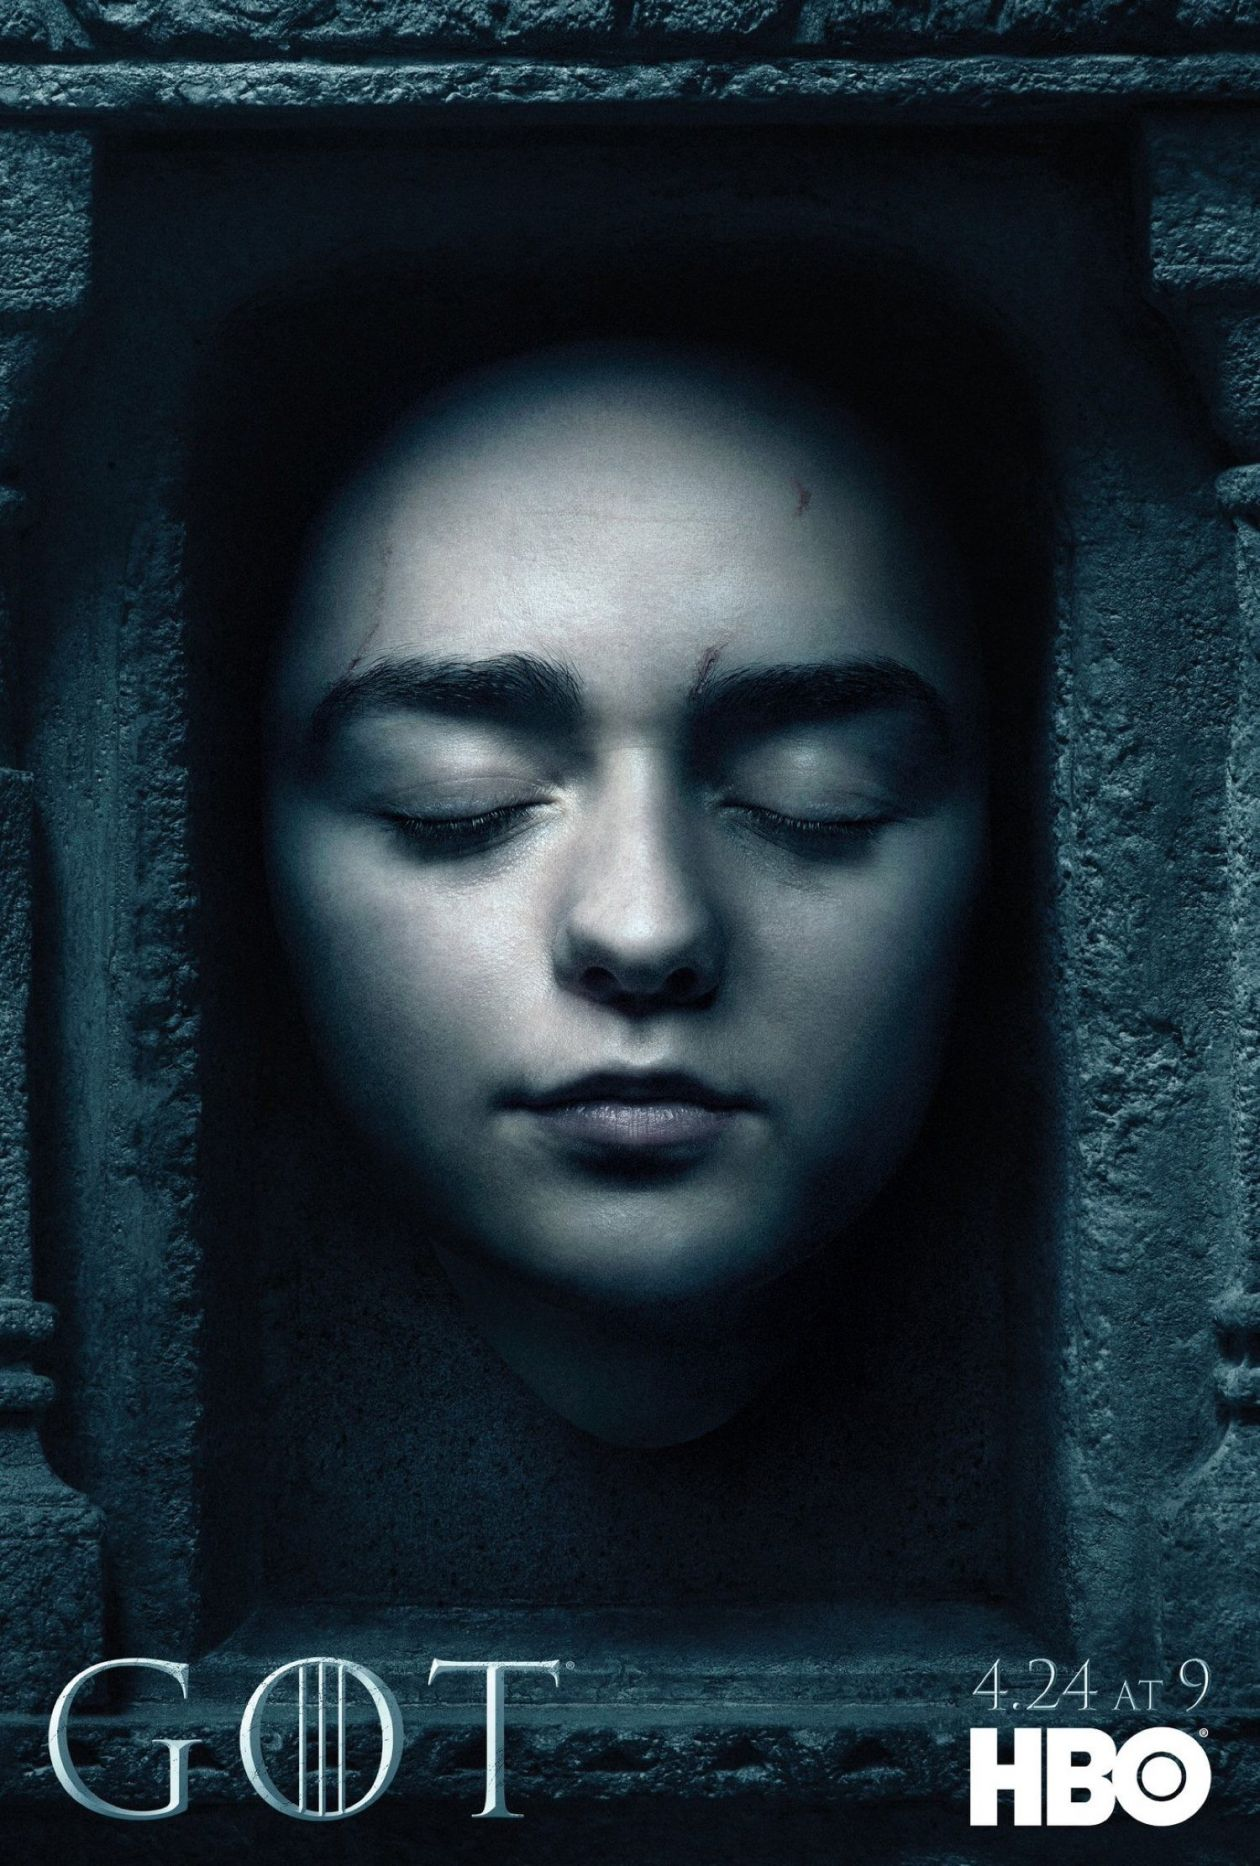 Maisie Williams actress : Arya Stark  Game of Thrones : Series Poster Season 6 2016